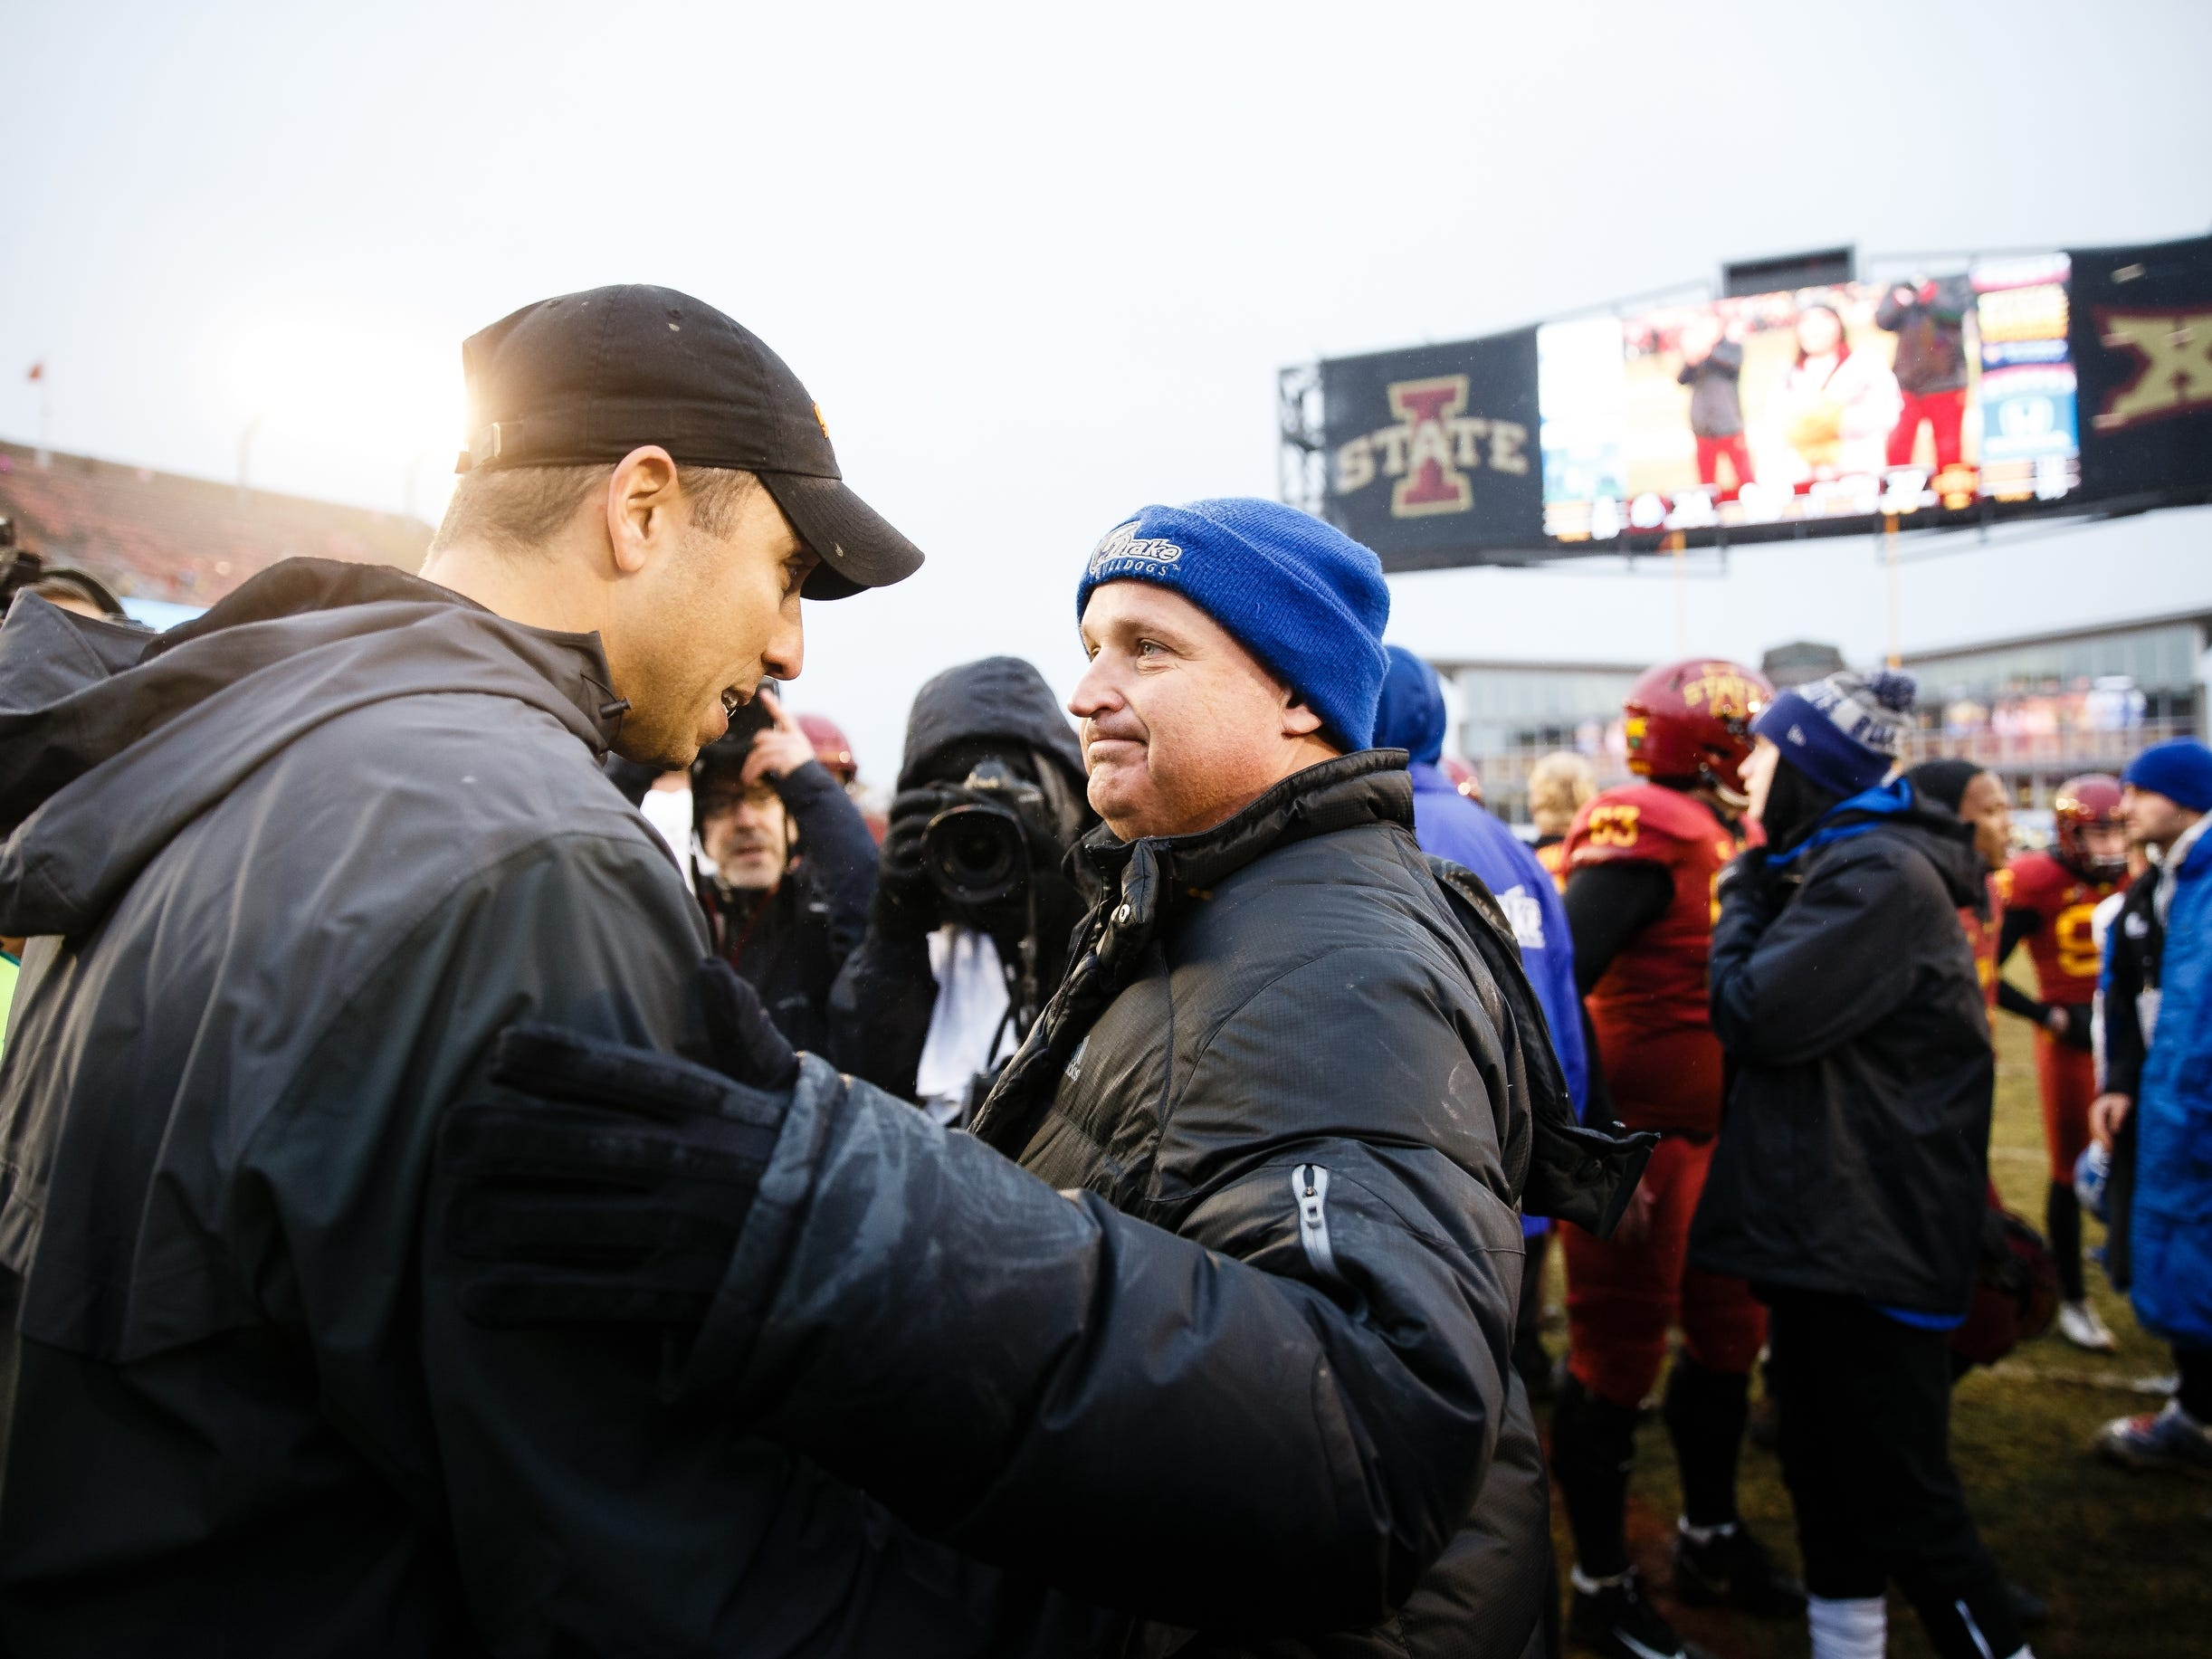 Iowa State head coach Matt Campbell, left, and Drake head coach Rick Fox talk at midfield after ISU defeated Drake 27-24 during their football game at Jack Trice Stadium on Saturday, Dec. 1, 2018, in Ames.